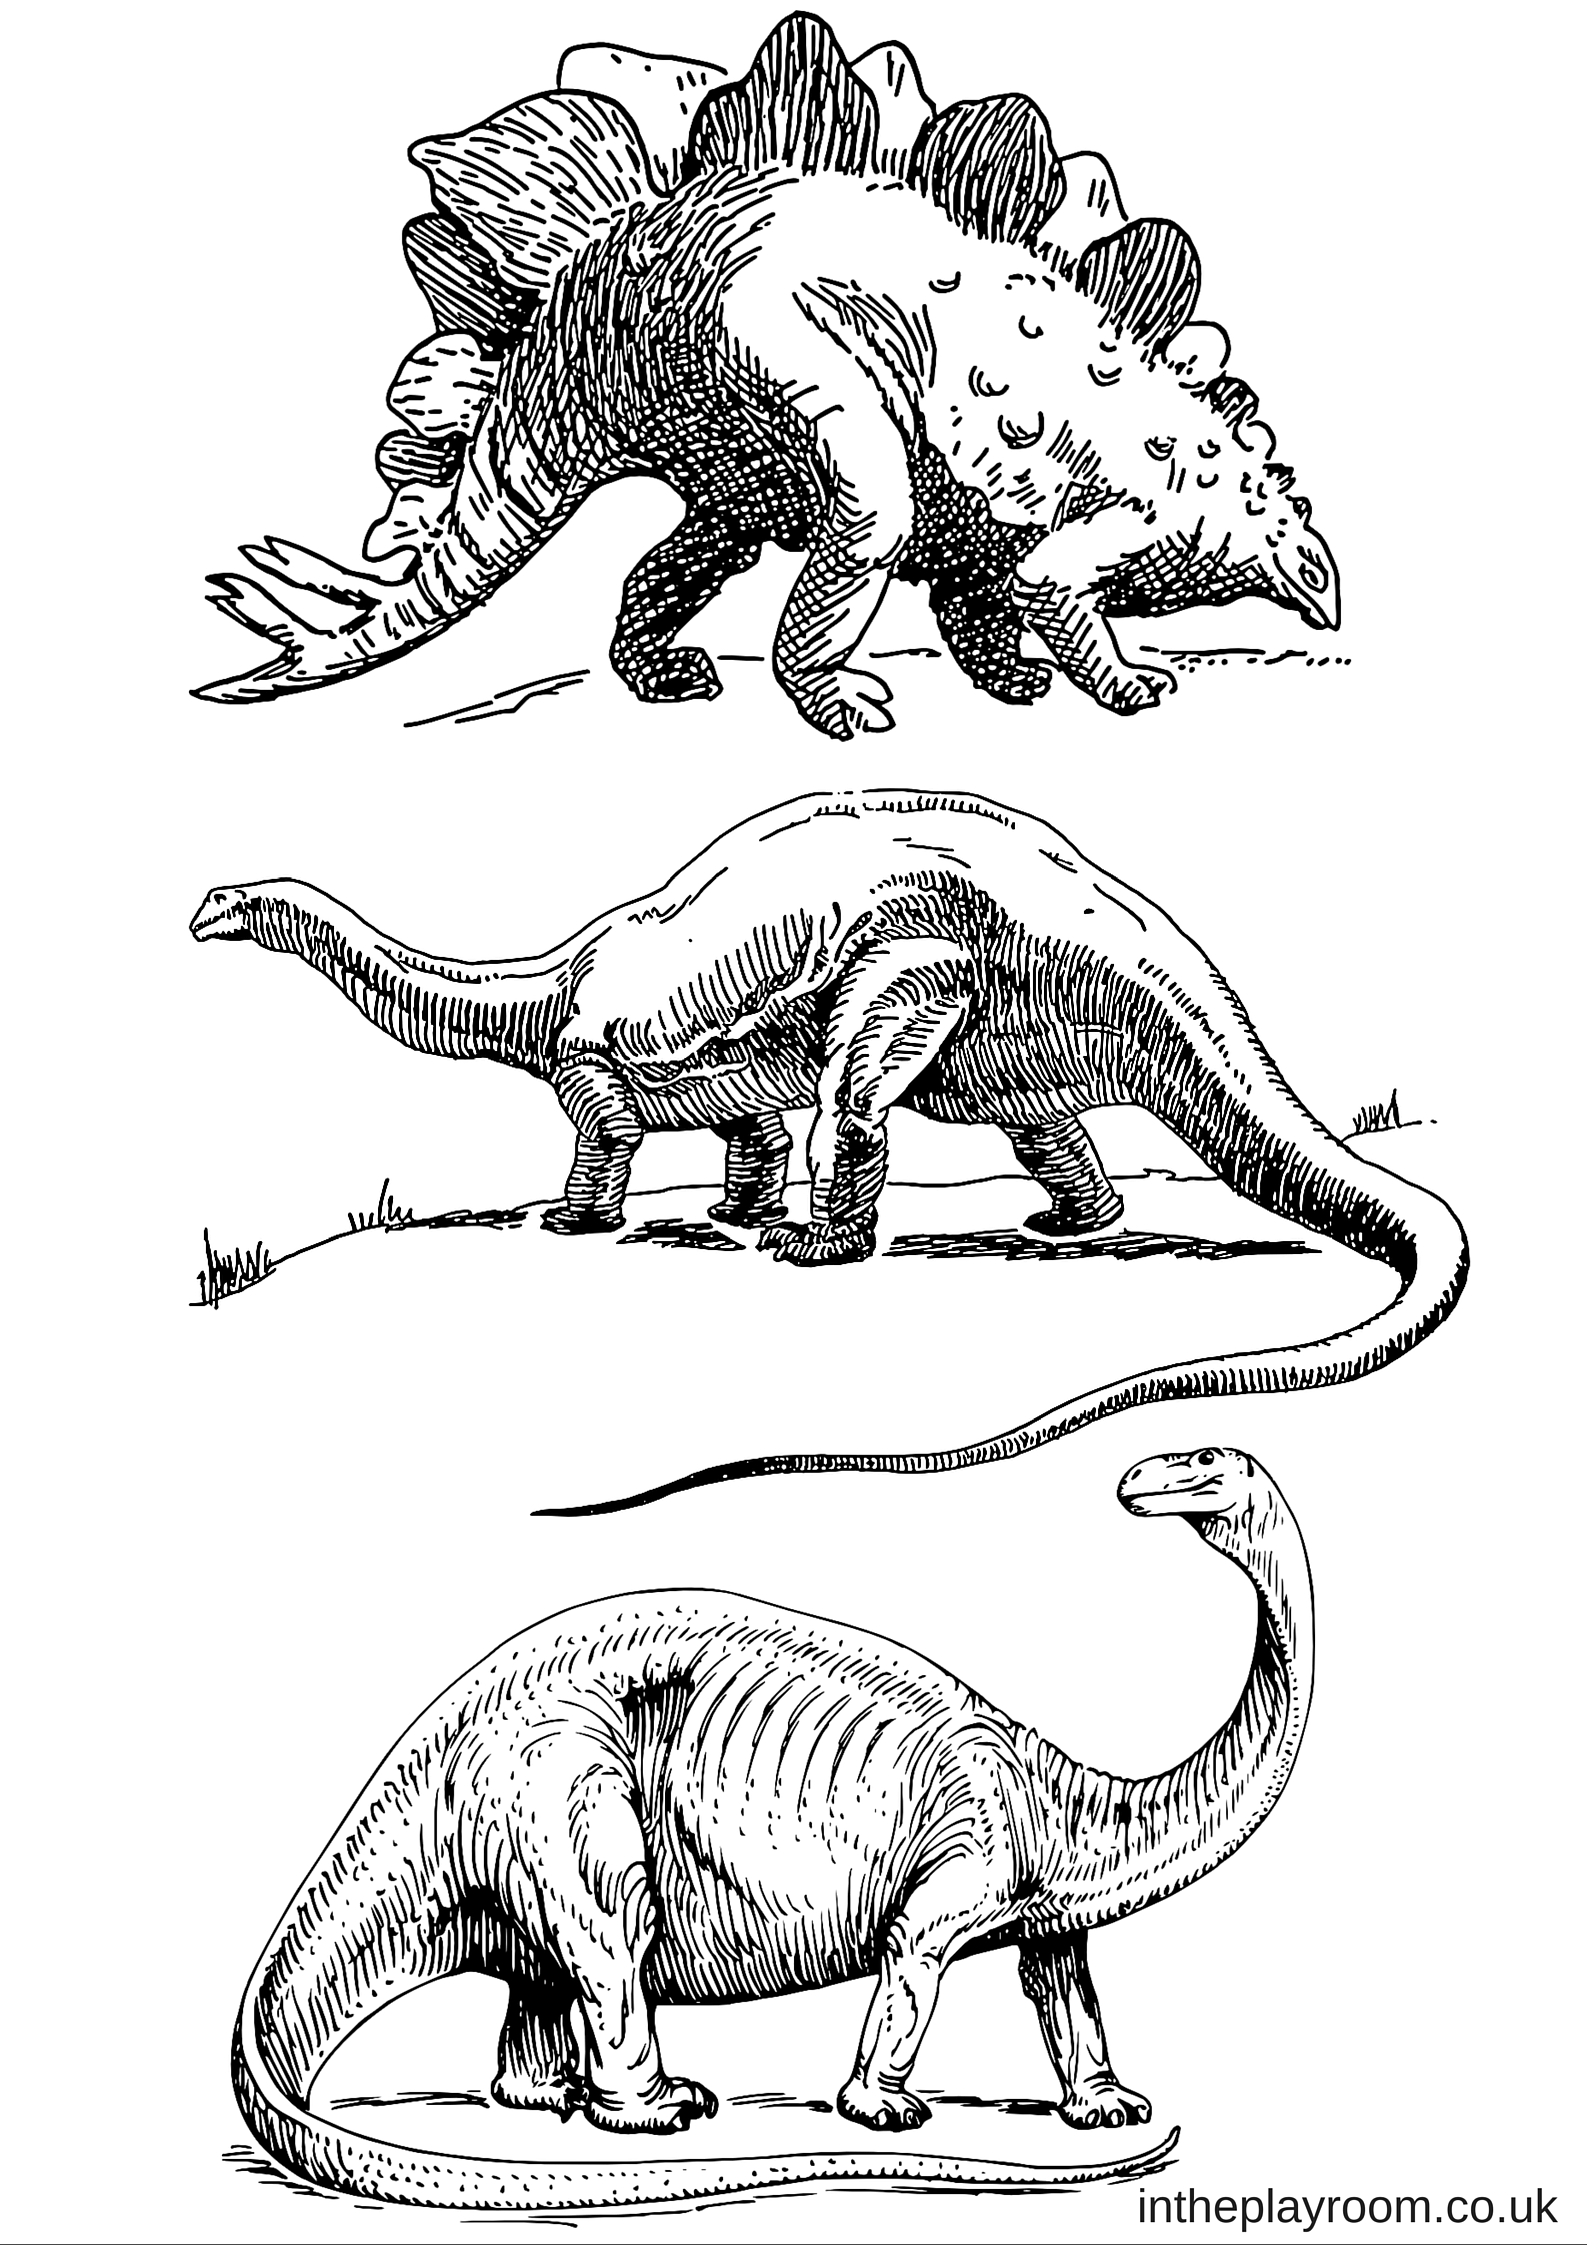 dinosaur pictures to colour in dinosaurs to print triceratops dinosaurs kids coloring colour dinosaur to in pictures